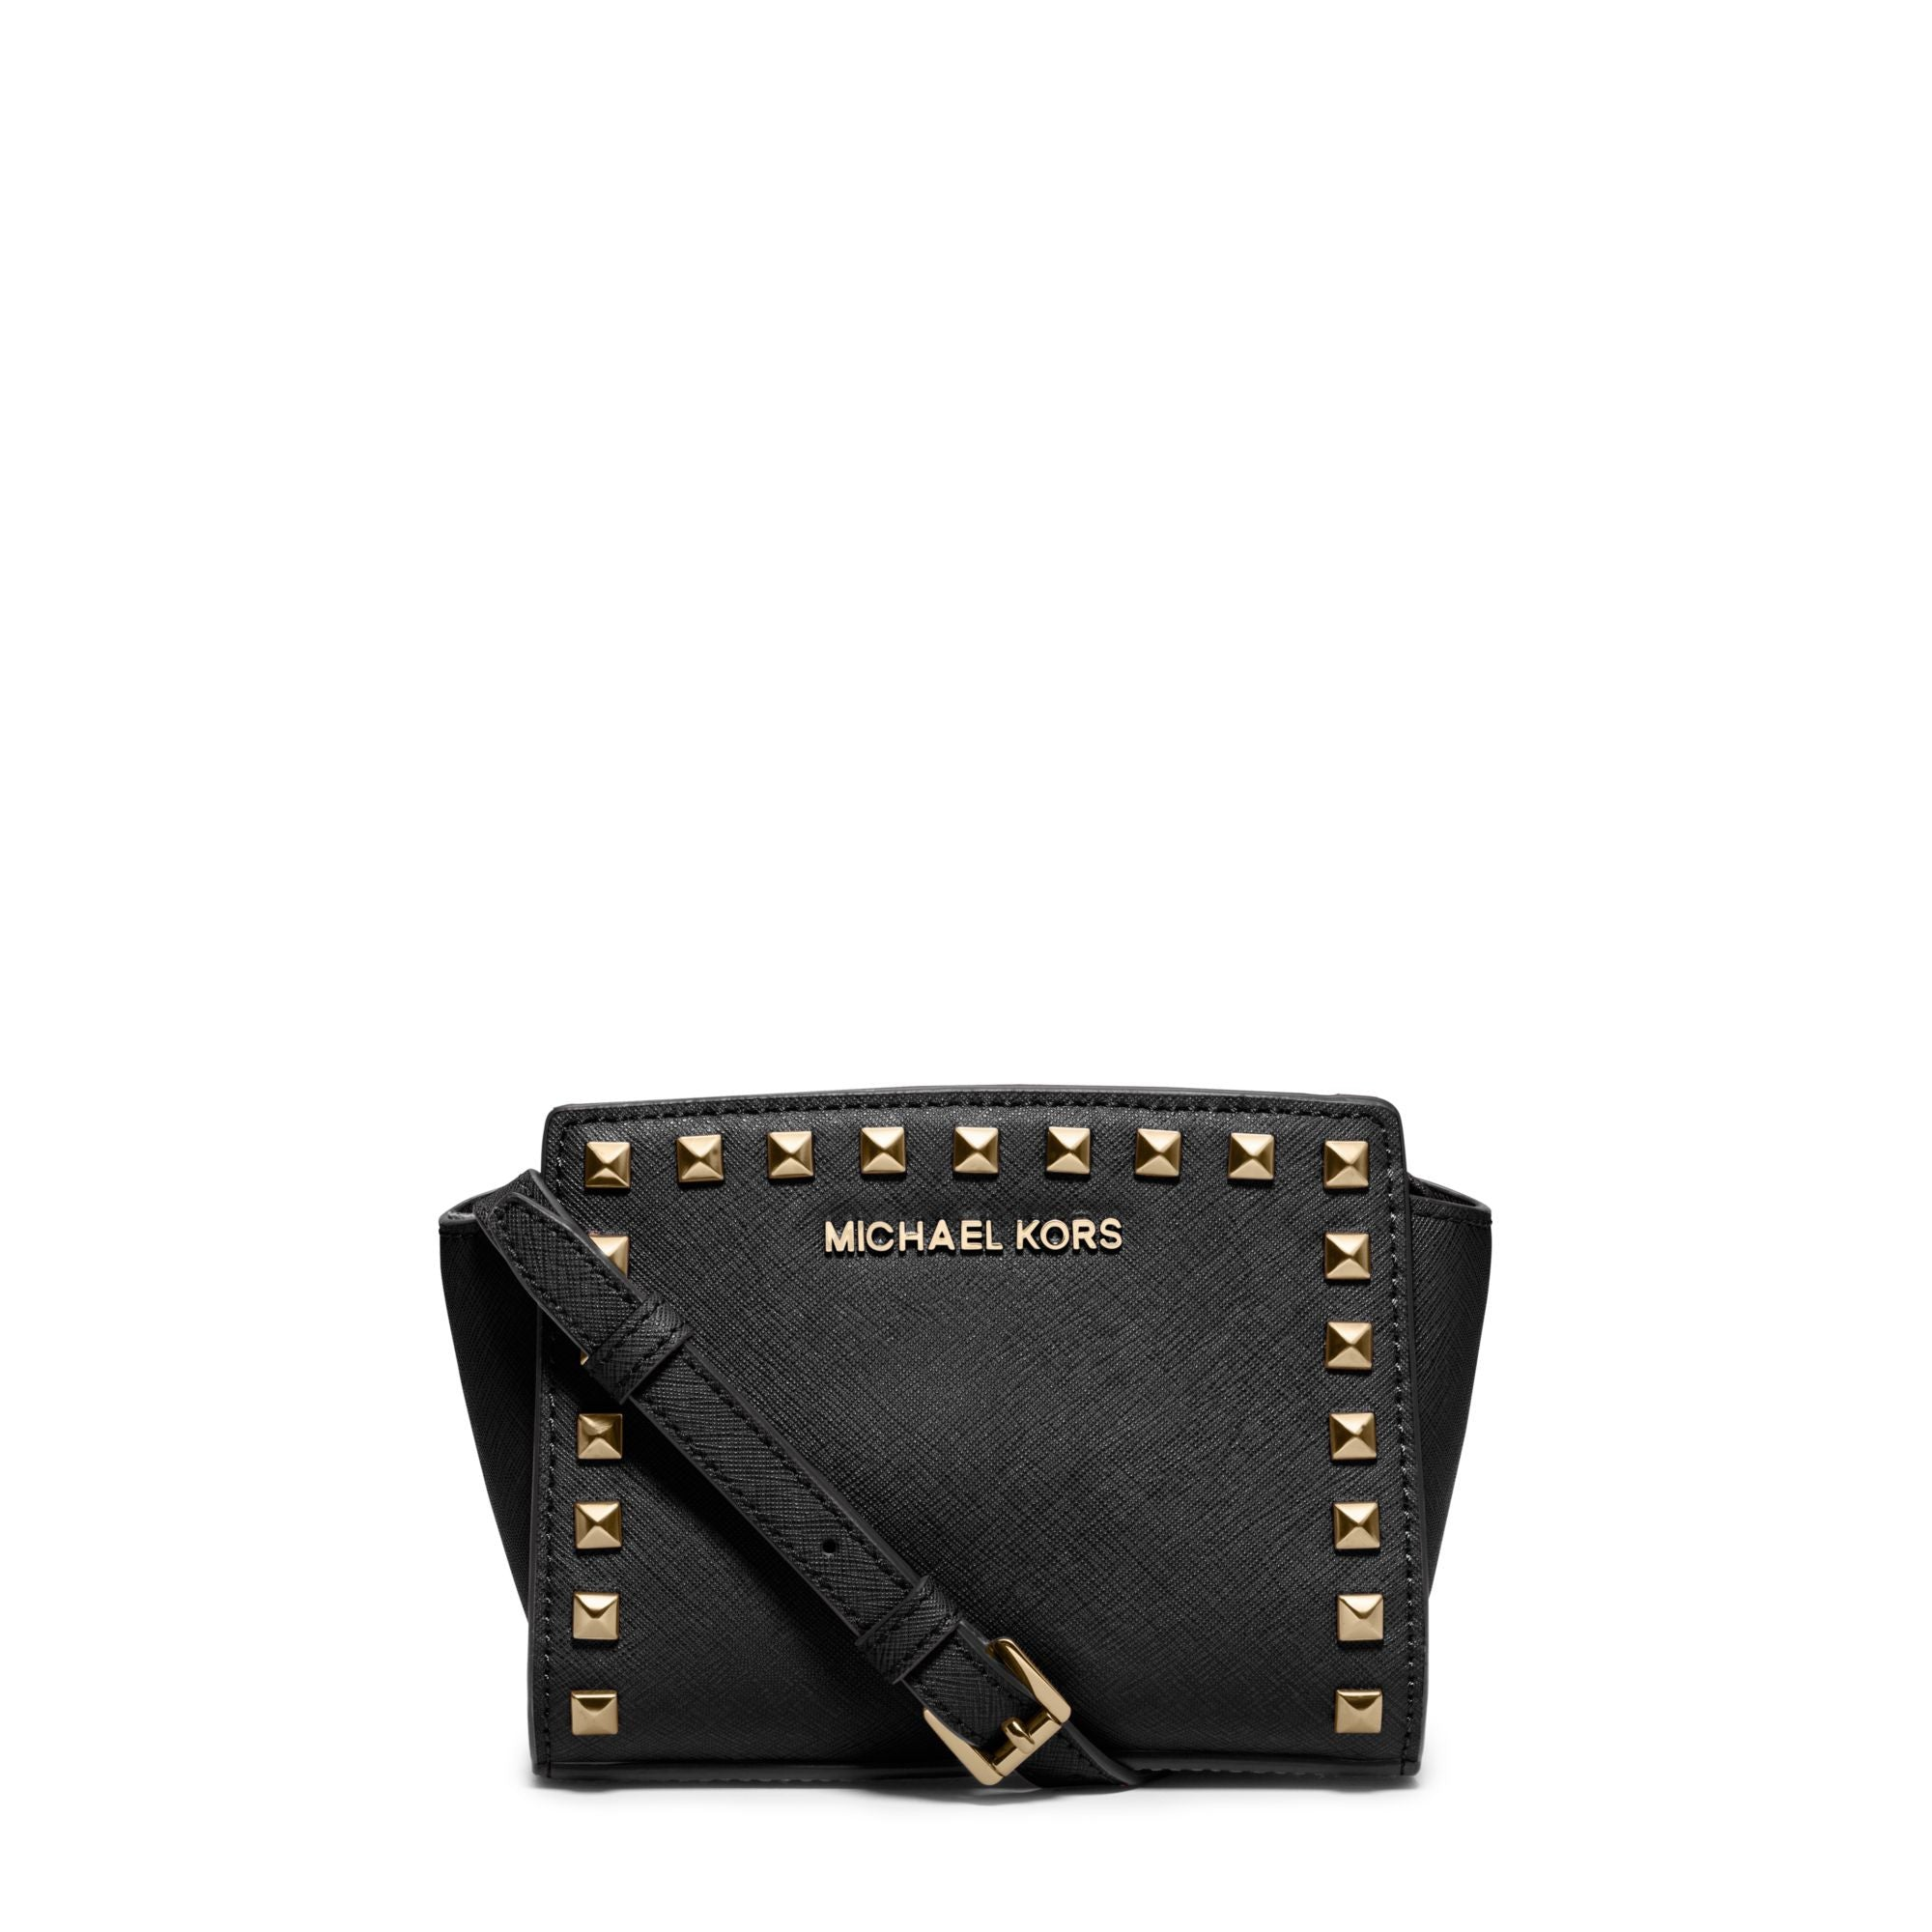 000d48f74bfa6e michael-kors-black-selma-mini-studded-leather-crossbody -product-1-775318011-normal.jpeg?v=1510177137